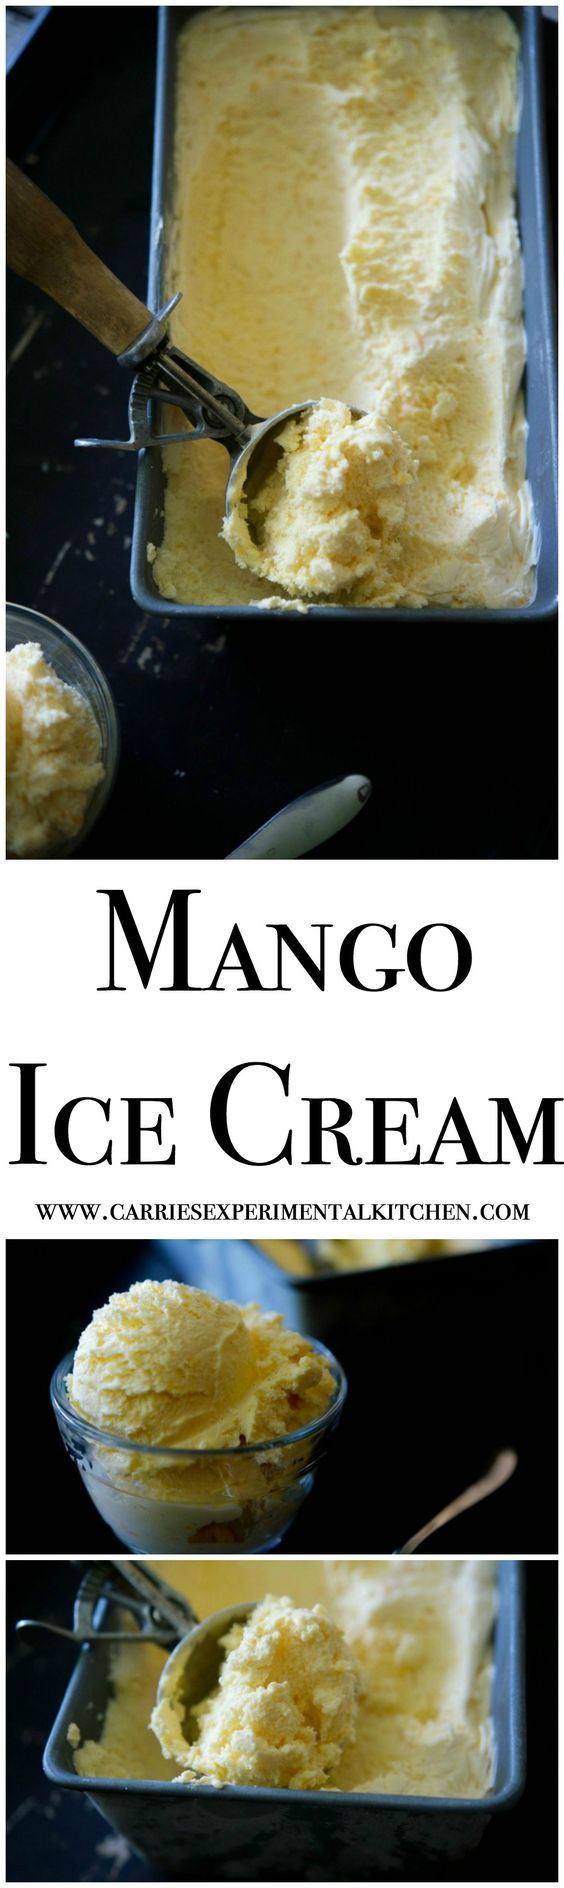 Homemade Mango Ice Cream made with sweet mangoes, heavy cream, milk, sugar and vanilla makes the perfect summertime frozen treat.